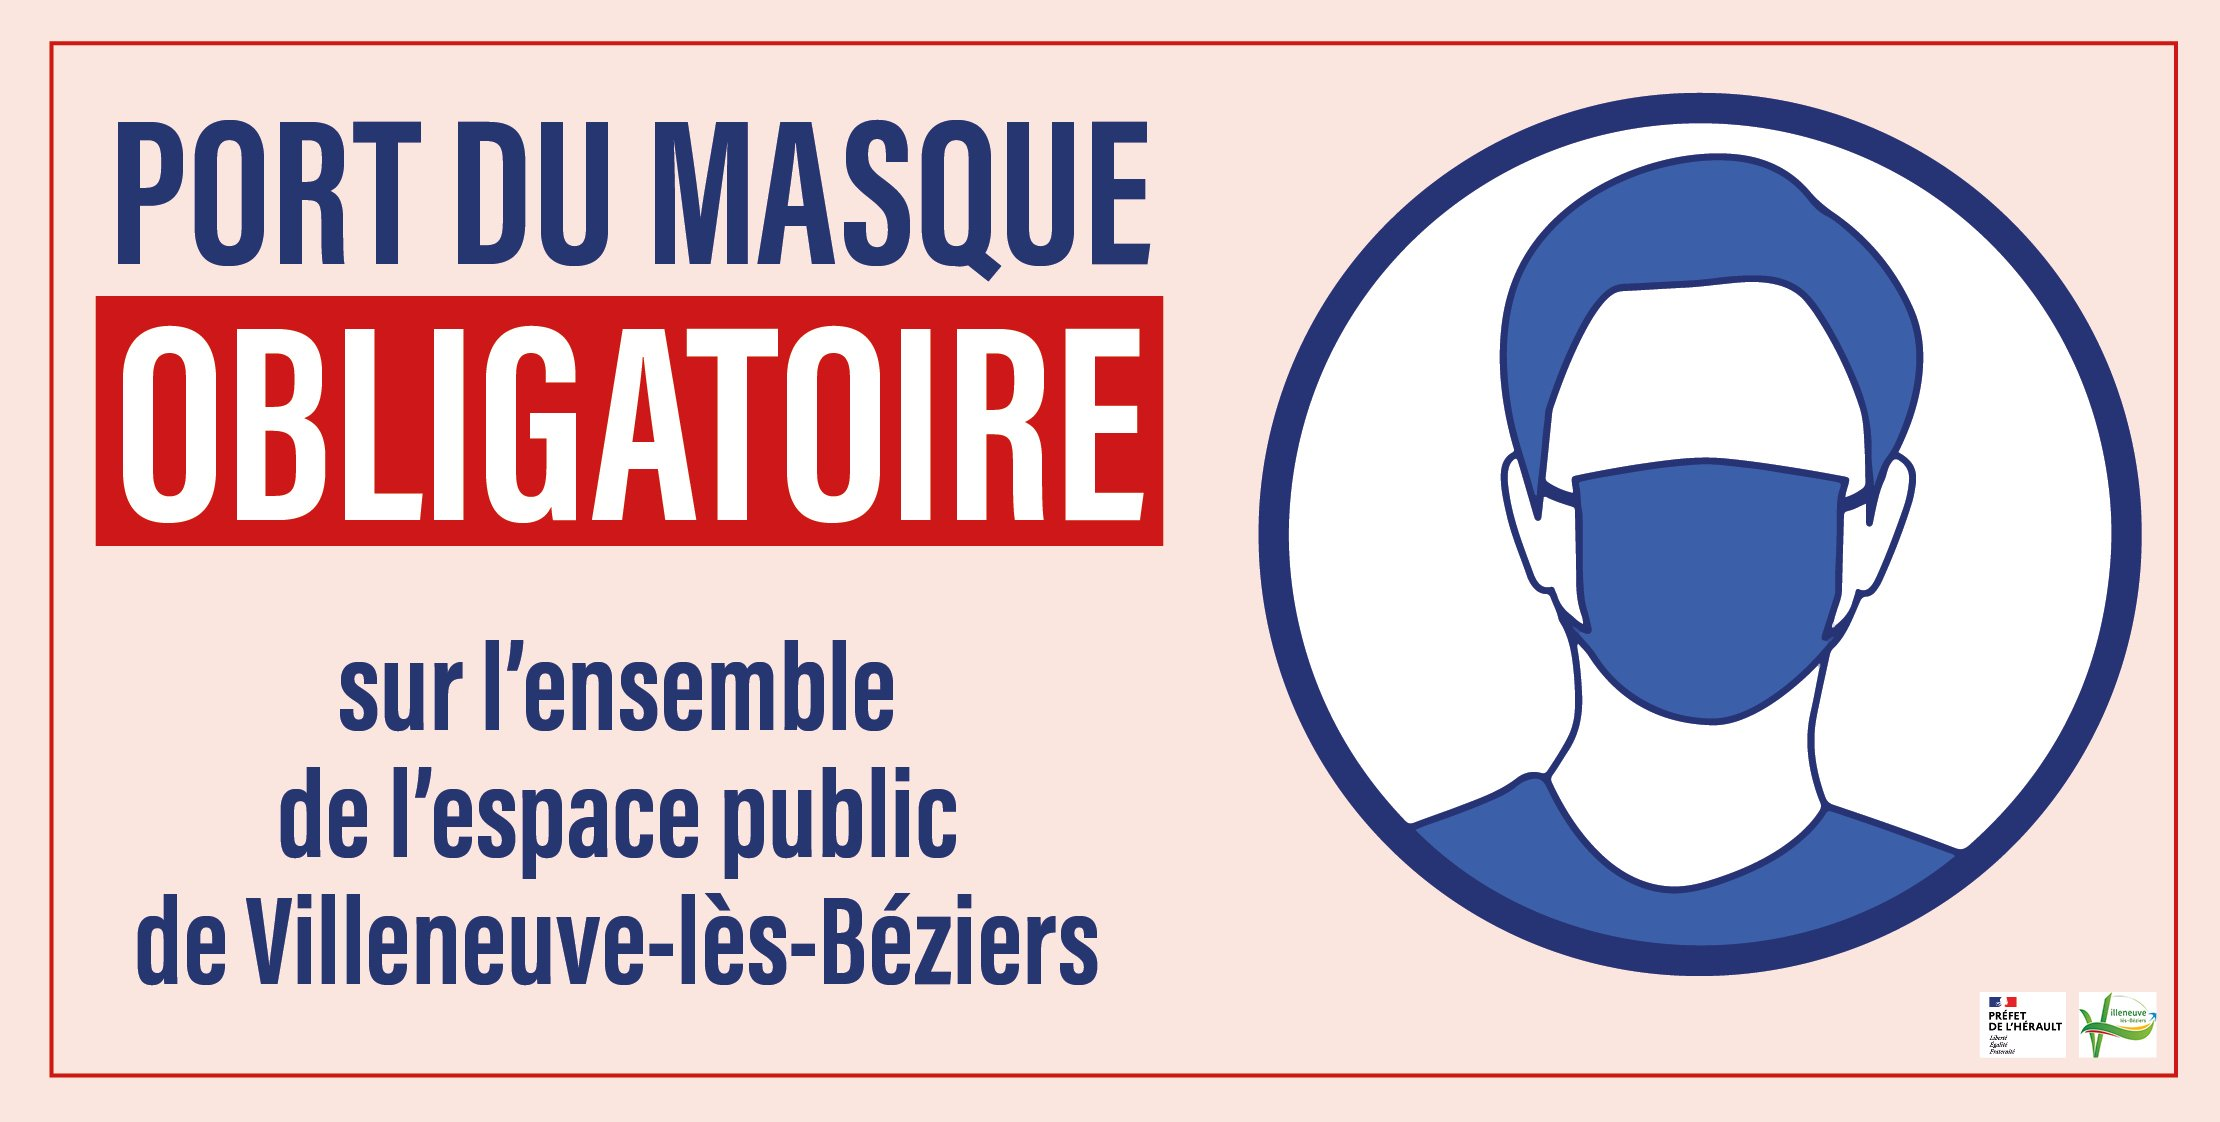 You are currently viewing Port du masque obligatoire